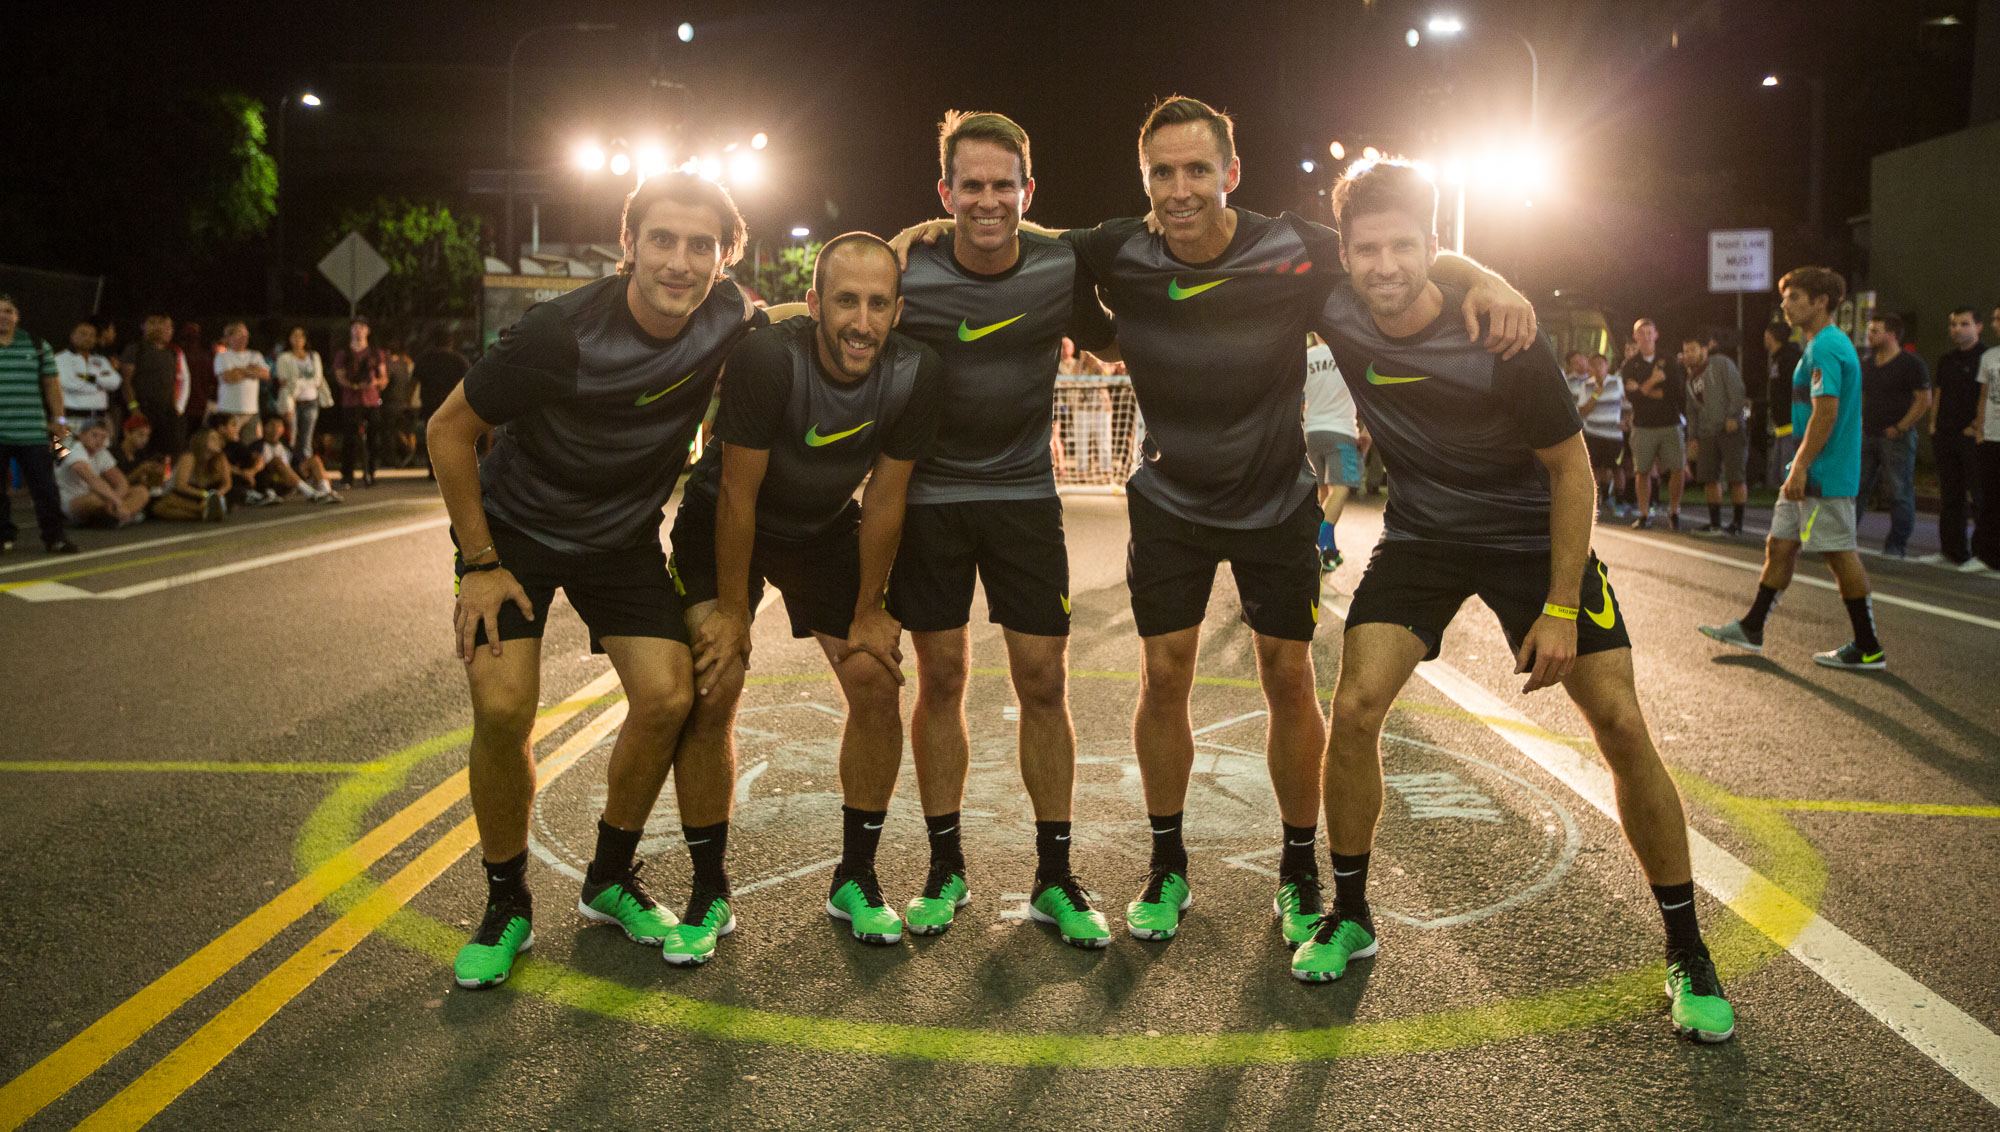 Nike Street Soccer with Steve Nash